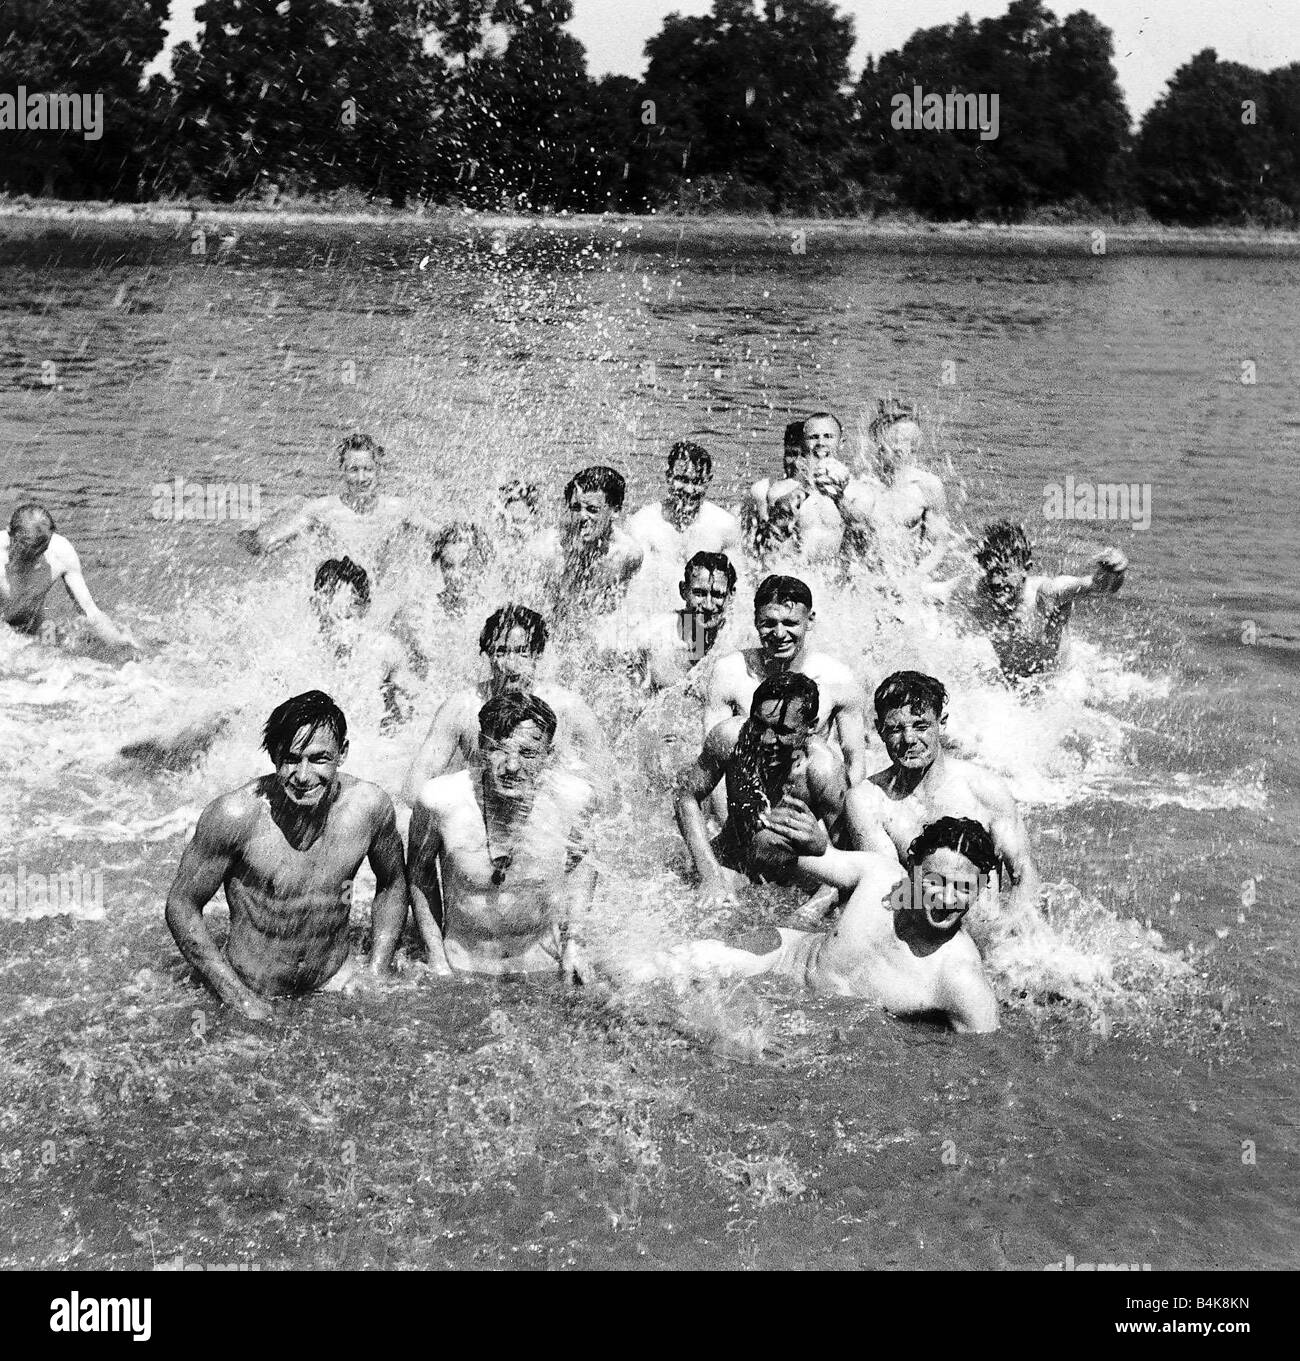 Paratroops from the US 6th Airborne Division enjoy a swim in a canal near the battlefront during WW2 1944 - Stock Image